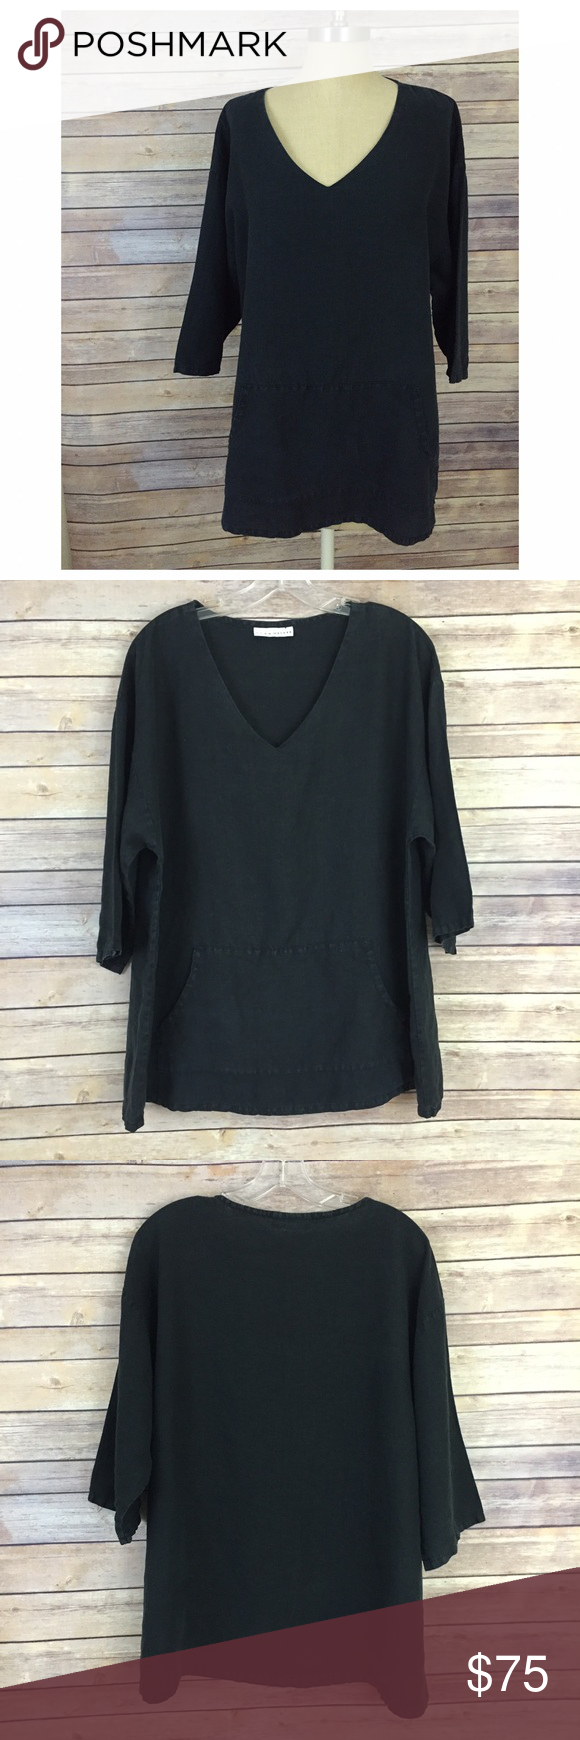 a9c61b672b5 BRYN WALKER Washed Black Linen Tunic This gorgeous oversized tunic is  FABULOUS! I m